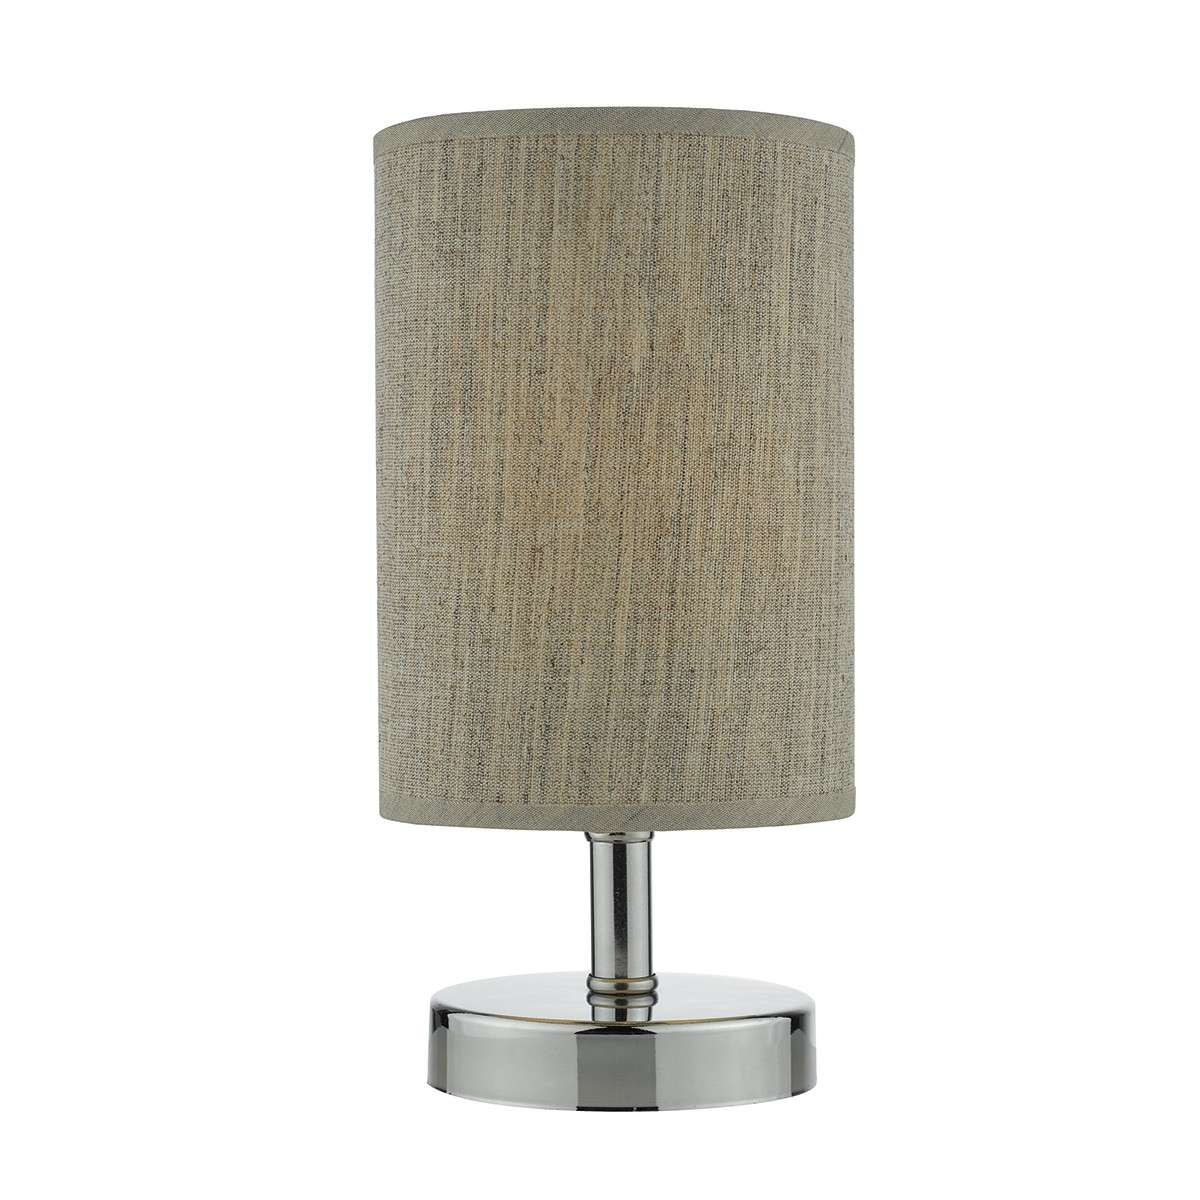 Eryn Touch Switch Table Lamp Polished Chrome c/w Taupe Linen Shade